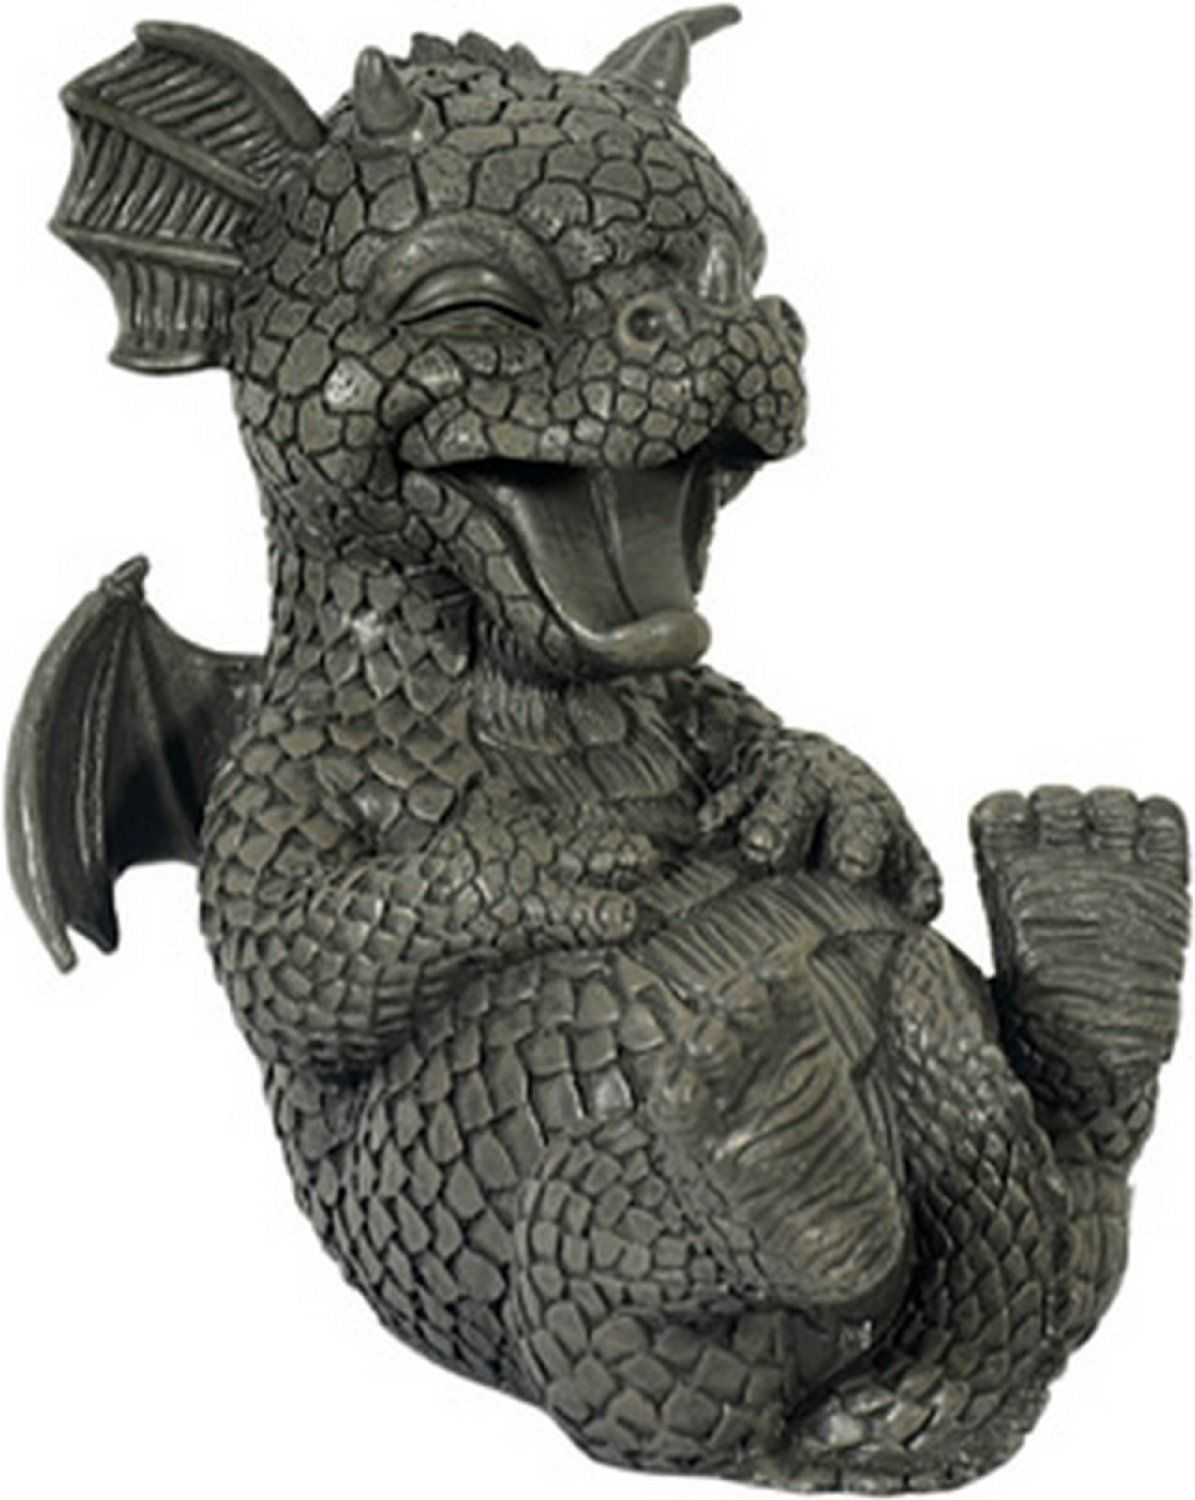 Ars Bavaria kringelt against Laugh Dragon Figure Garden Ornament